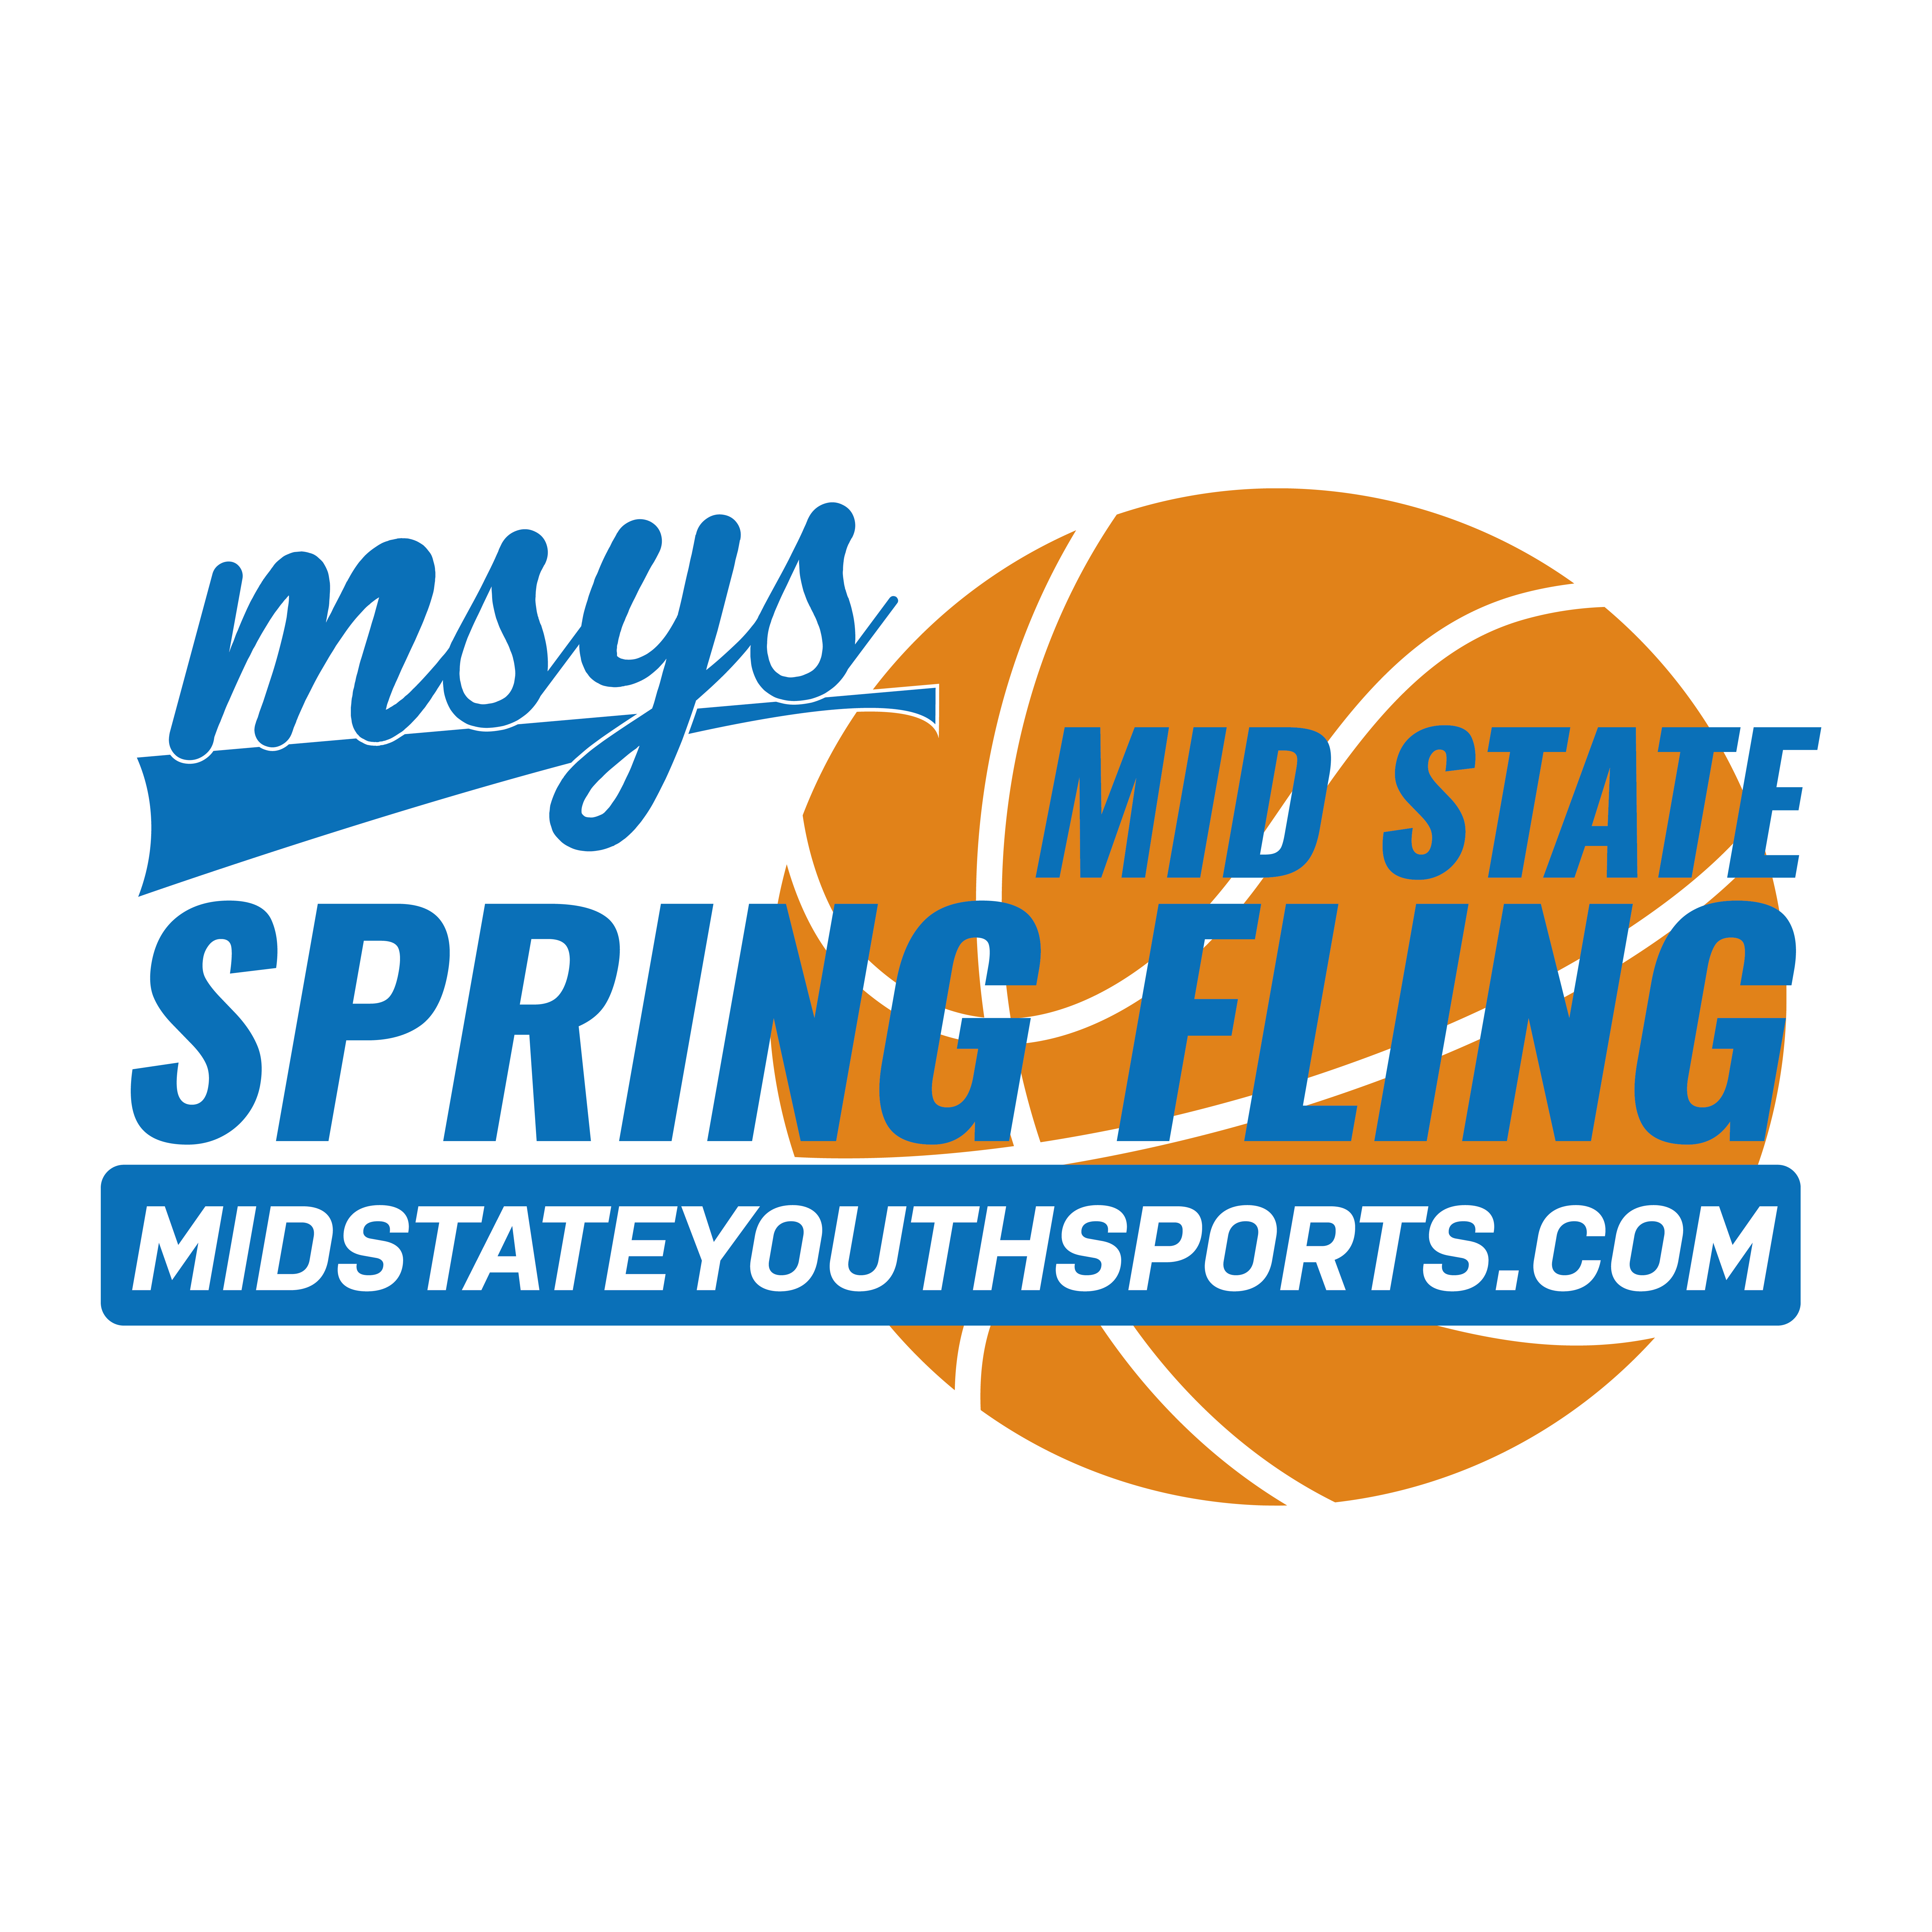 MSYS 8th Annual Mid State Spring Fling